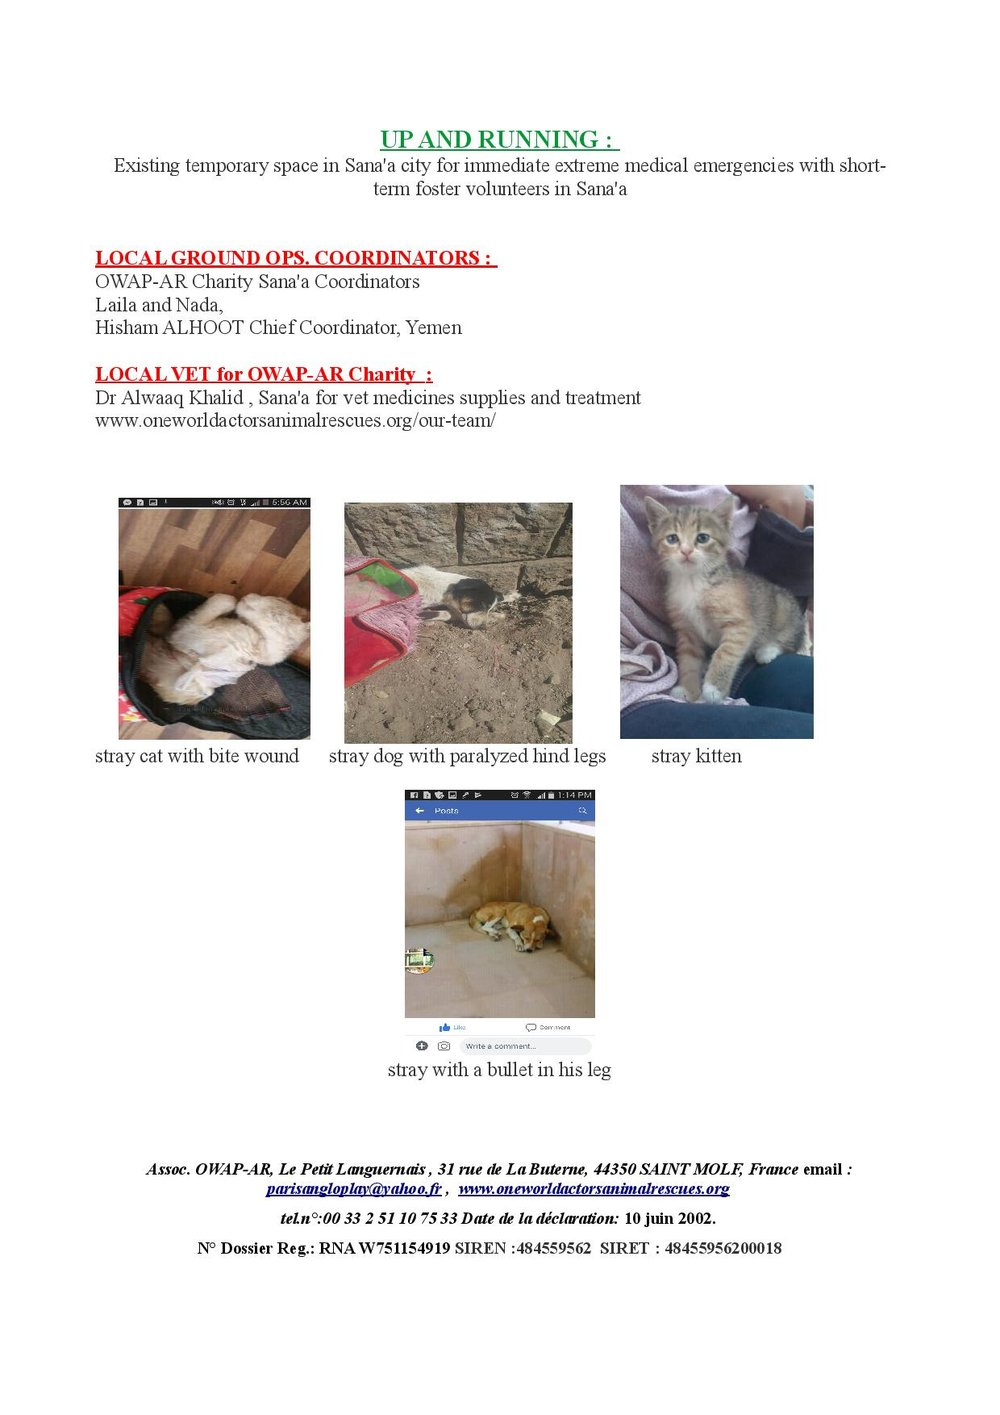 Stray Animals Rescue and Shelter Mission Sana a Yemen by OWAP-AR Charity OPTION 2 College of Agriculture Sana a university-page-005.jpg